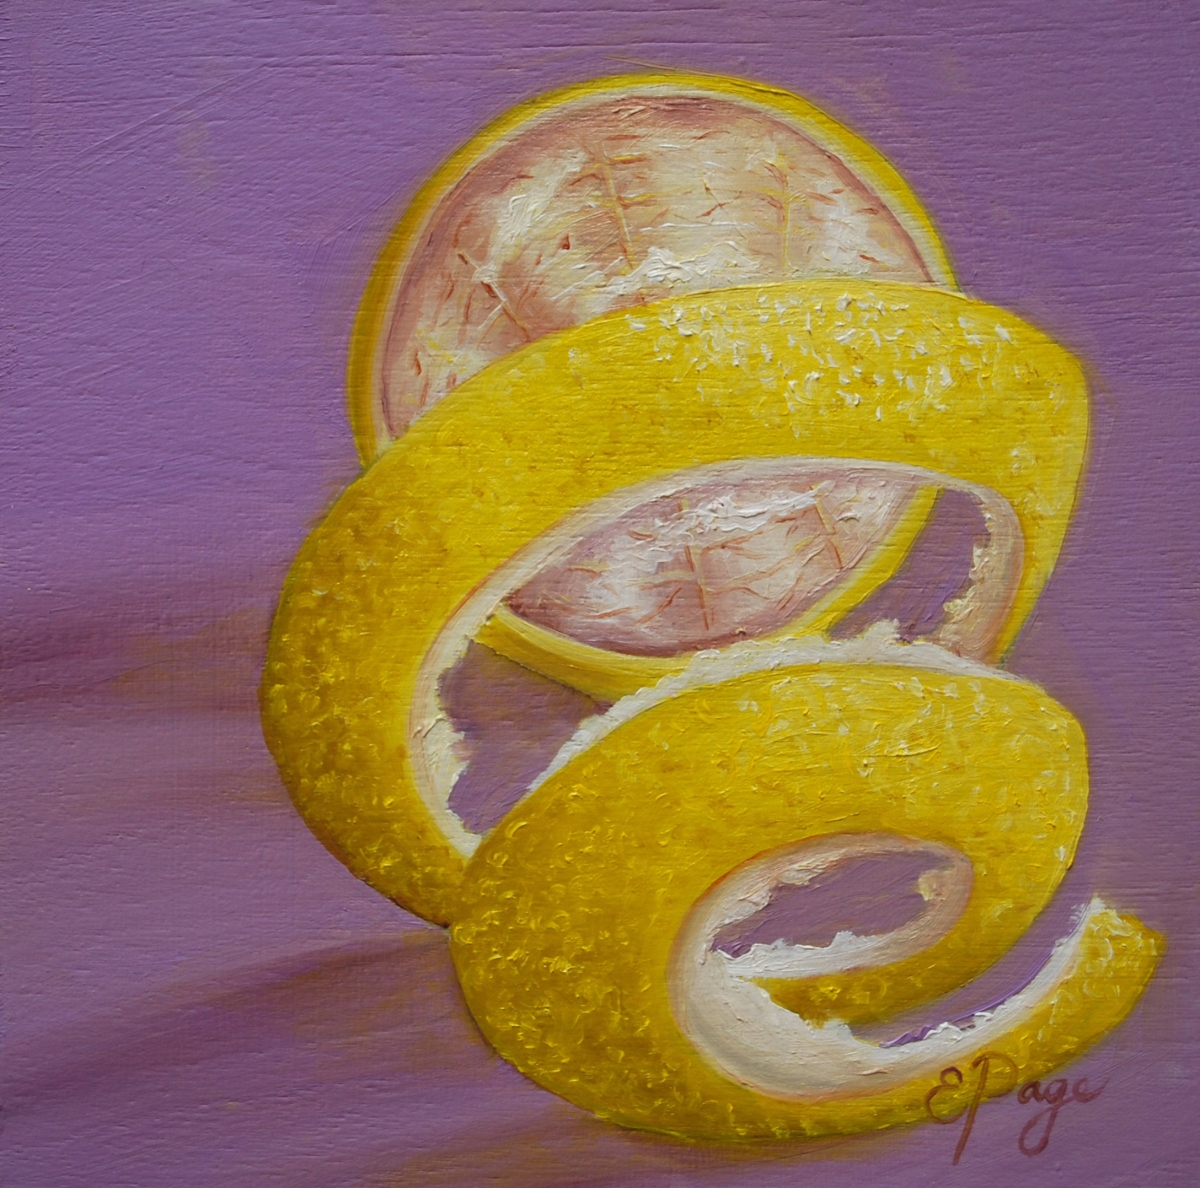 Don't Let Your Lemons Get In A Twist